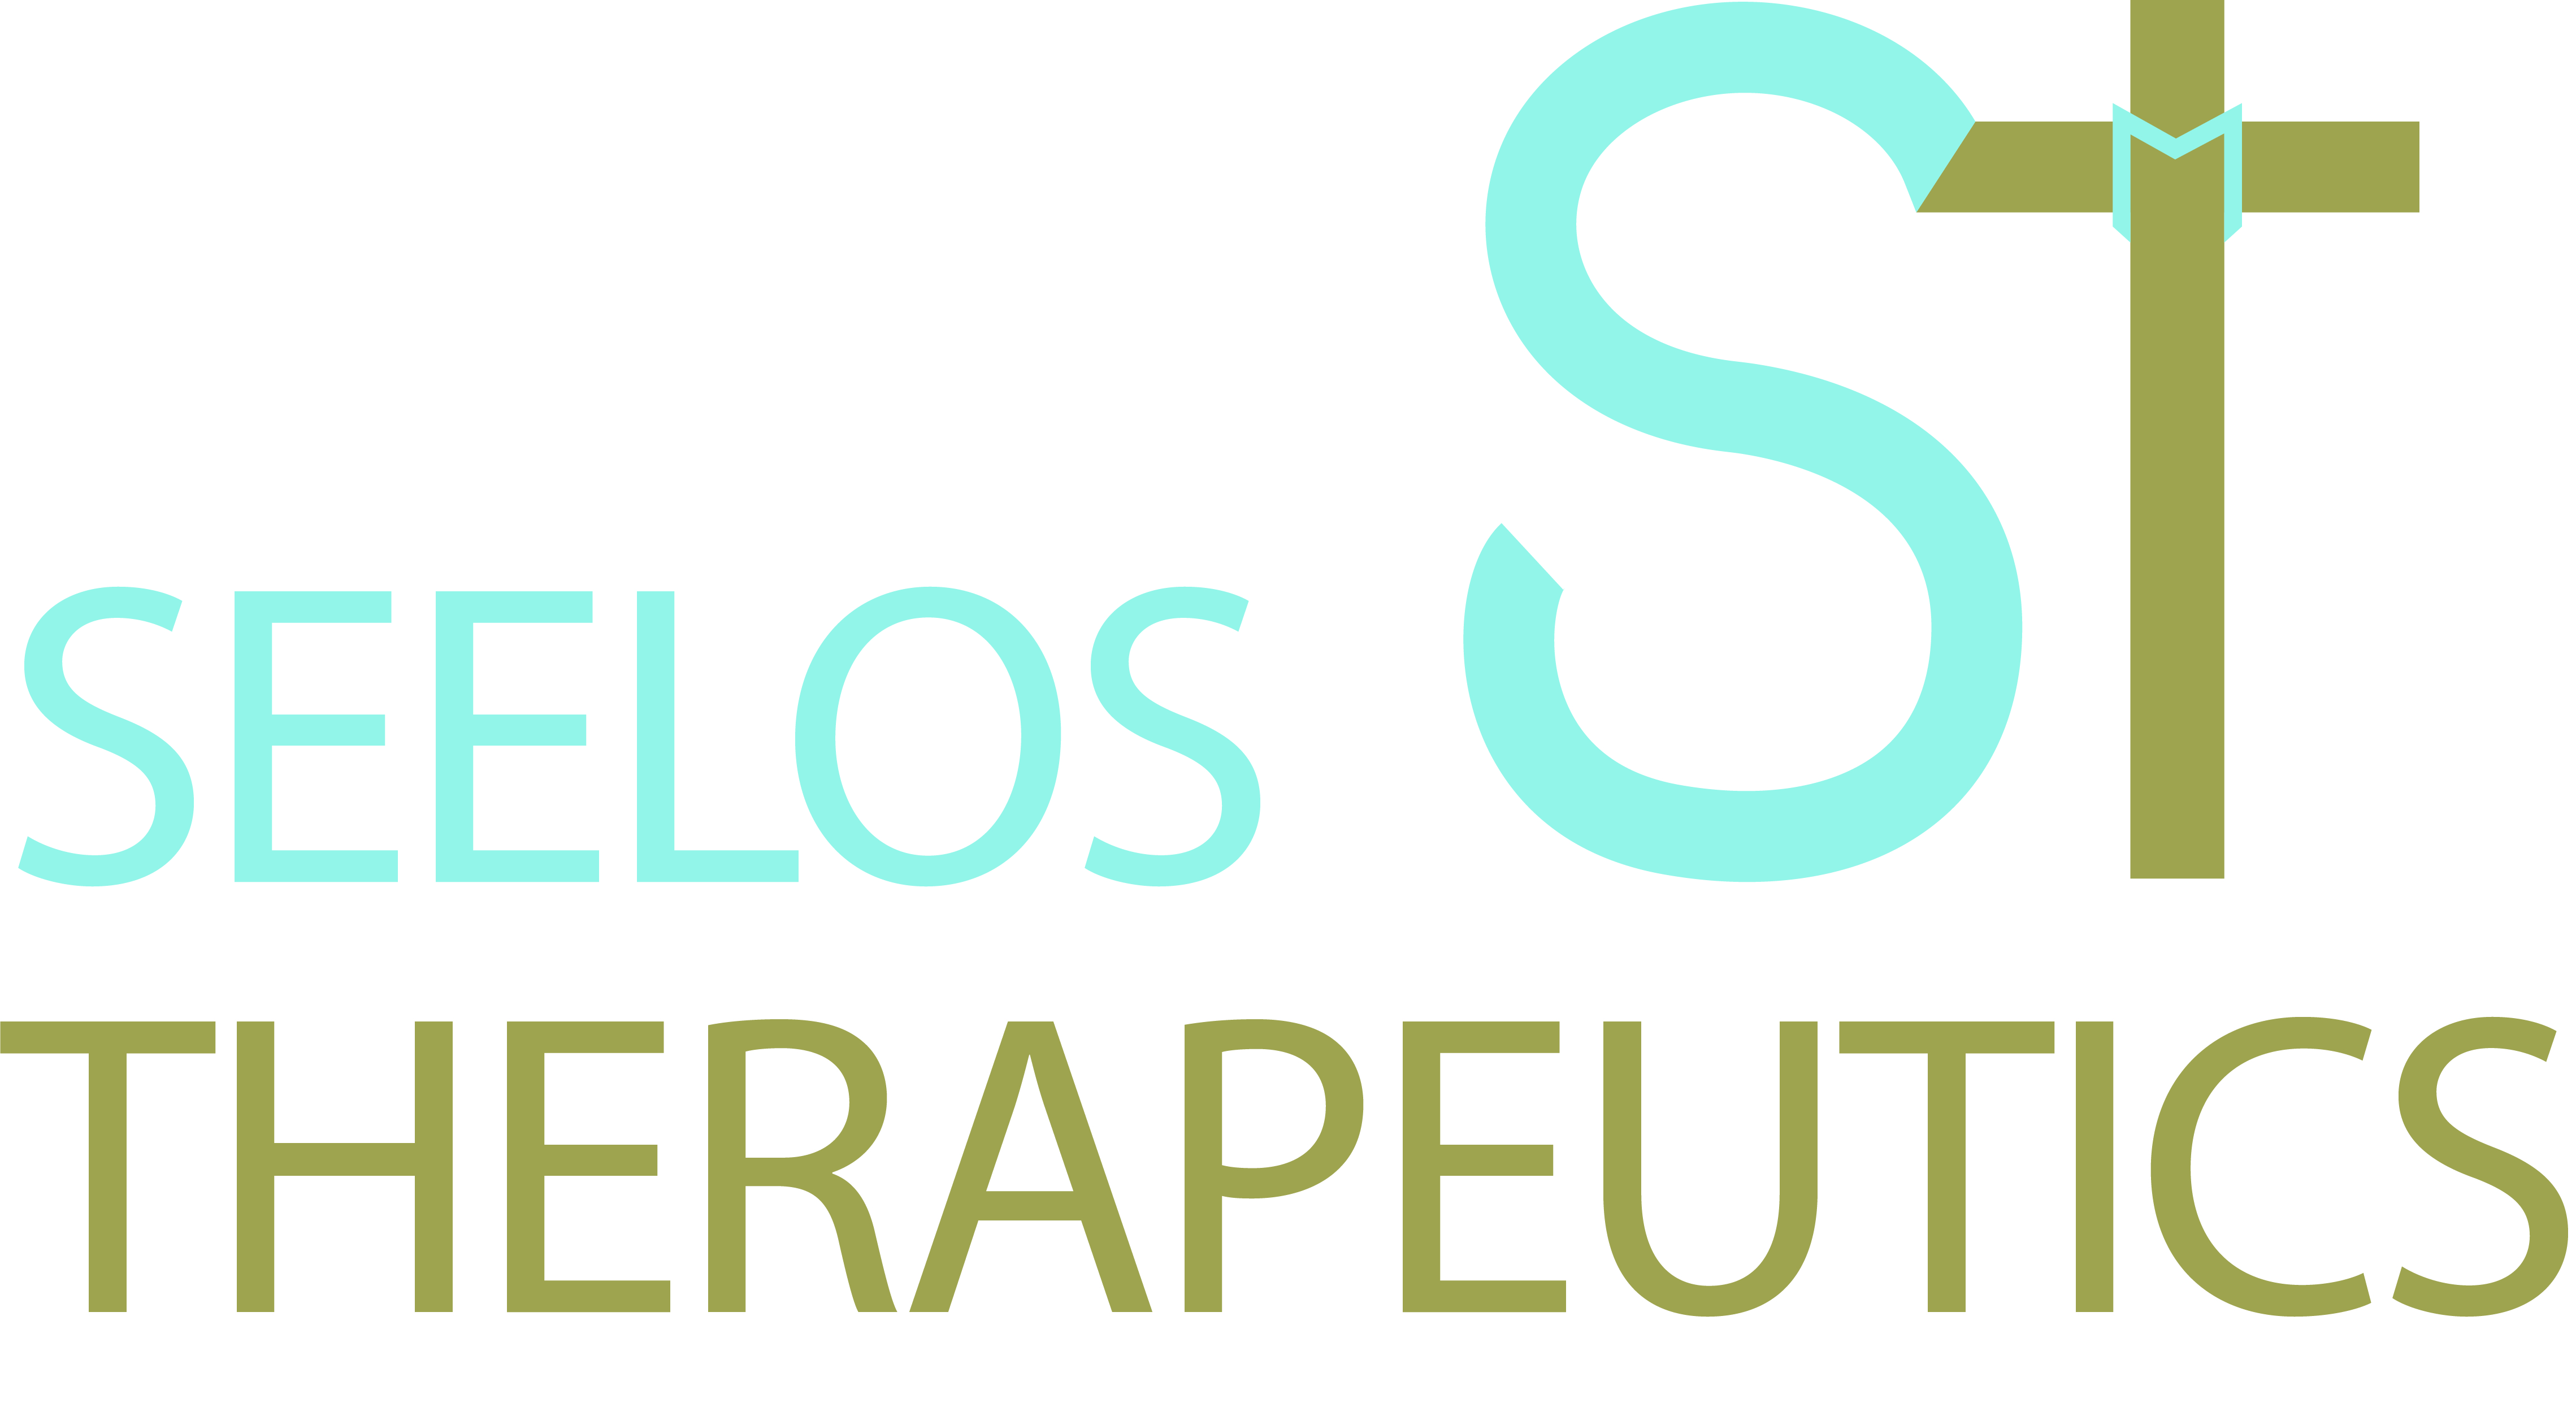 Seelos_full logo and icon color.jpg